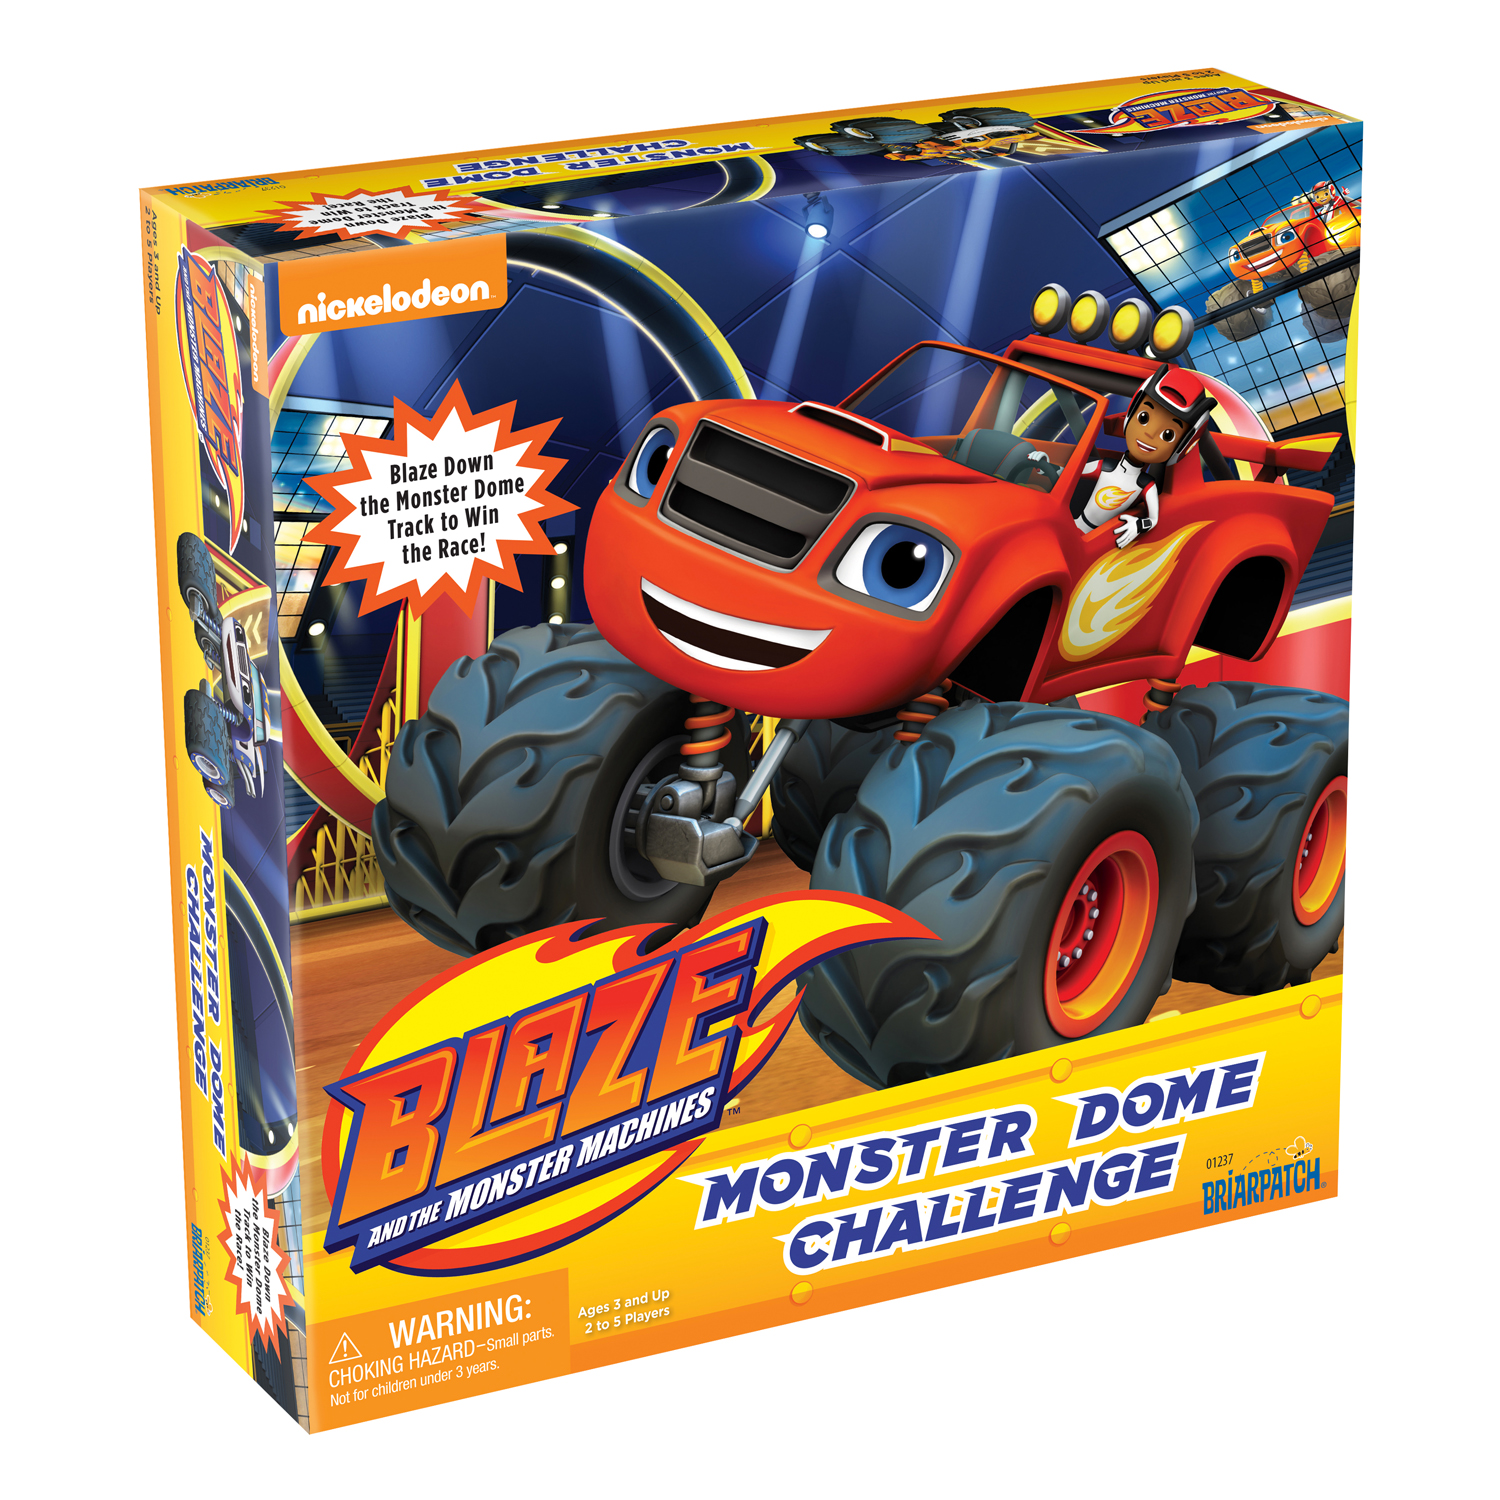 Briarpatch Blaze and the Monster Machines - Monster Dome Challenge Game